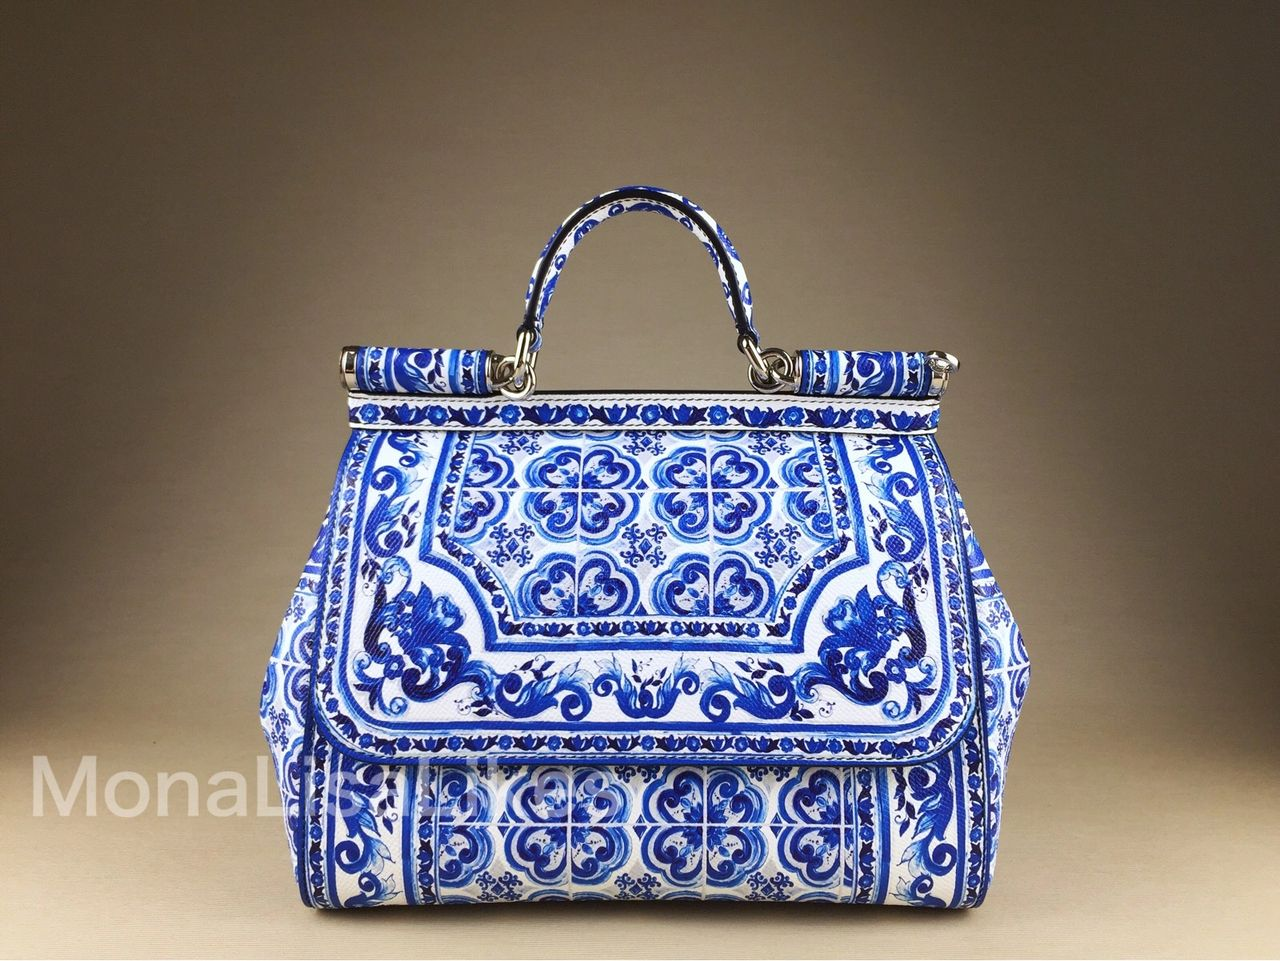 Blue Majolica print started a whole era of Majolica designs in DOLCE & GABBANA bags portfolio. This design still makes eveyone turn around to its owner